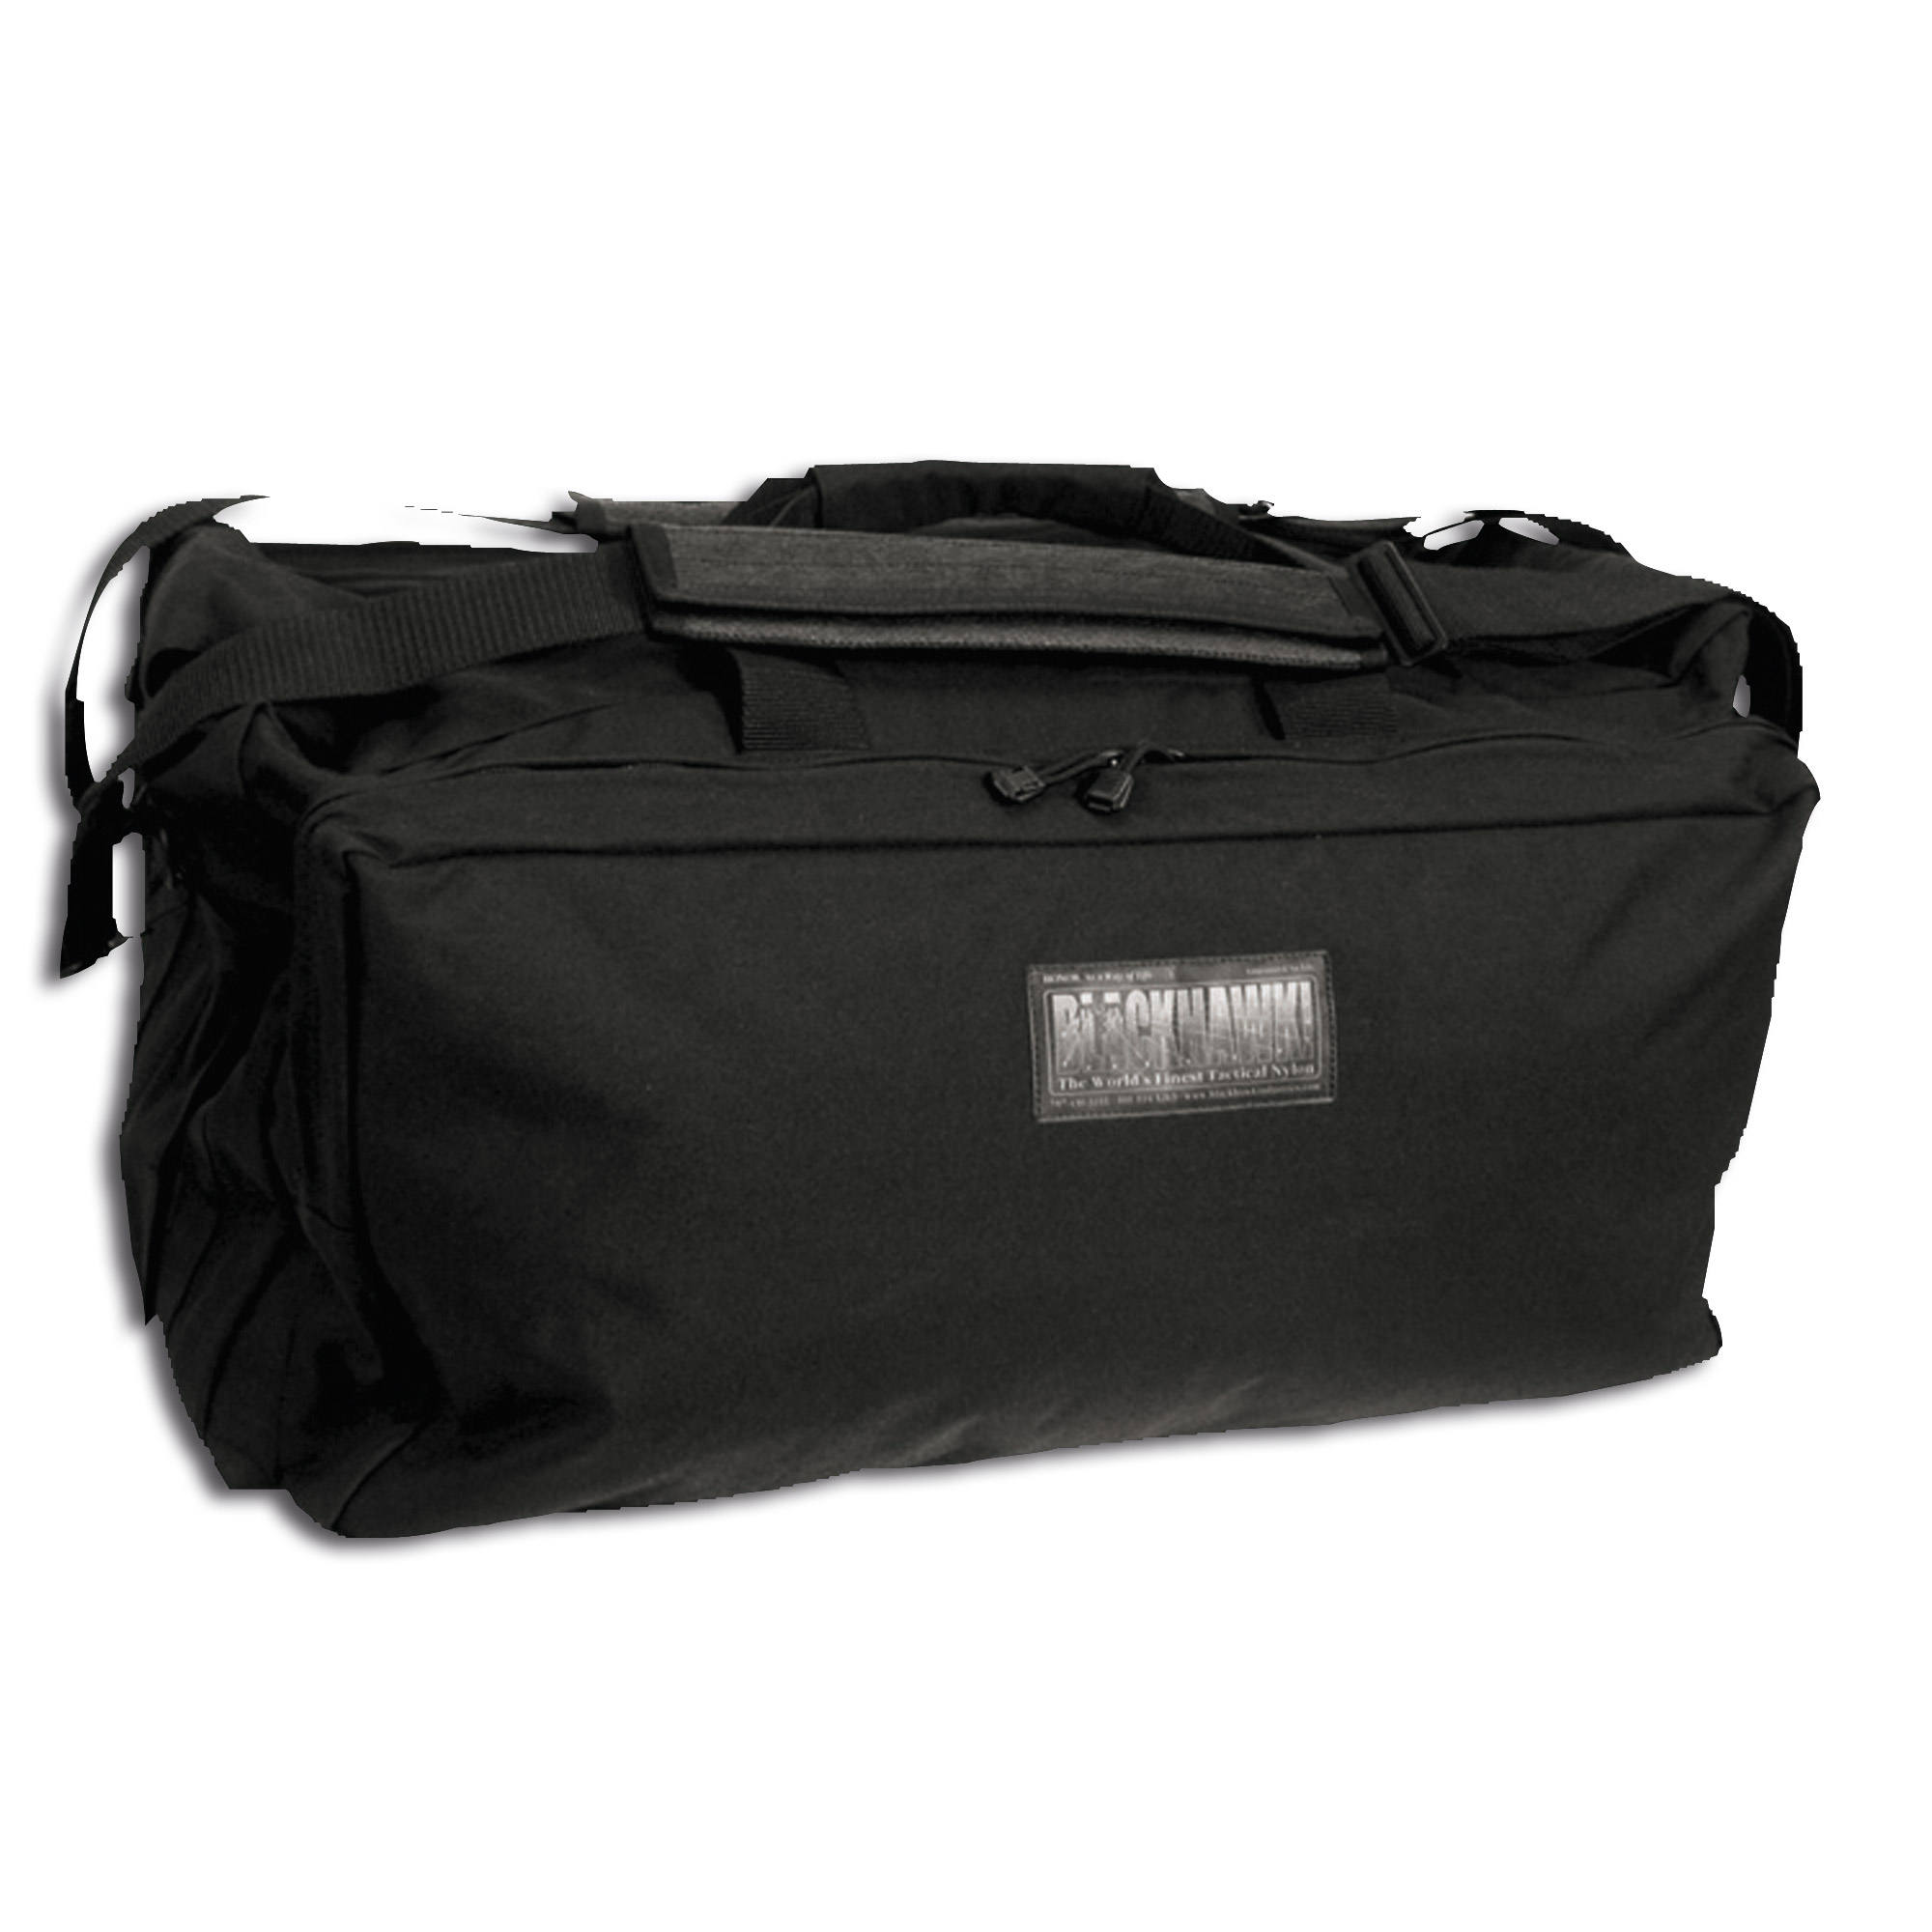 Blackhawk Mobile Operation Bag large noir